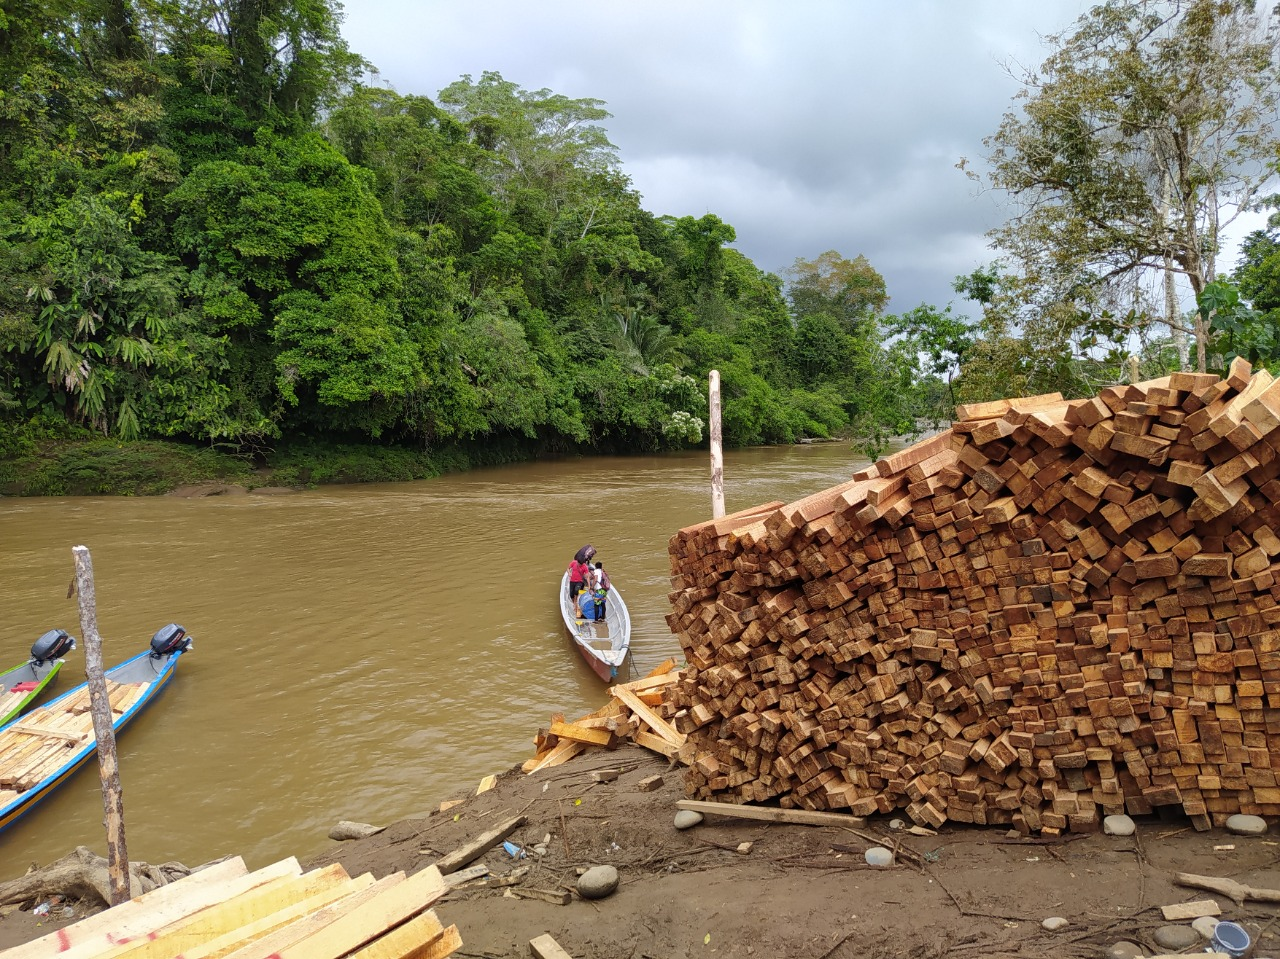 Loggers load canoes to transport sawn balsa lumber along the Copataza River. Image courtesy of Fundación Pachamama.